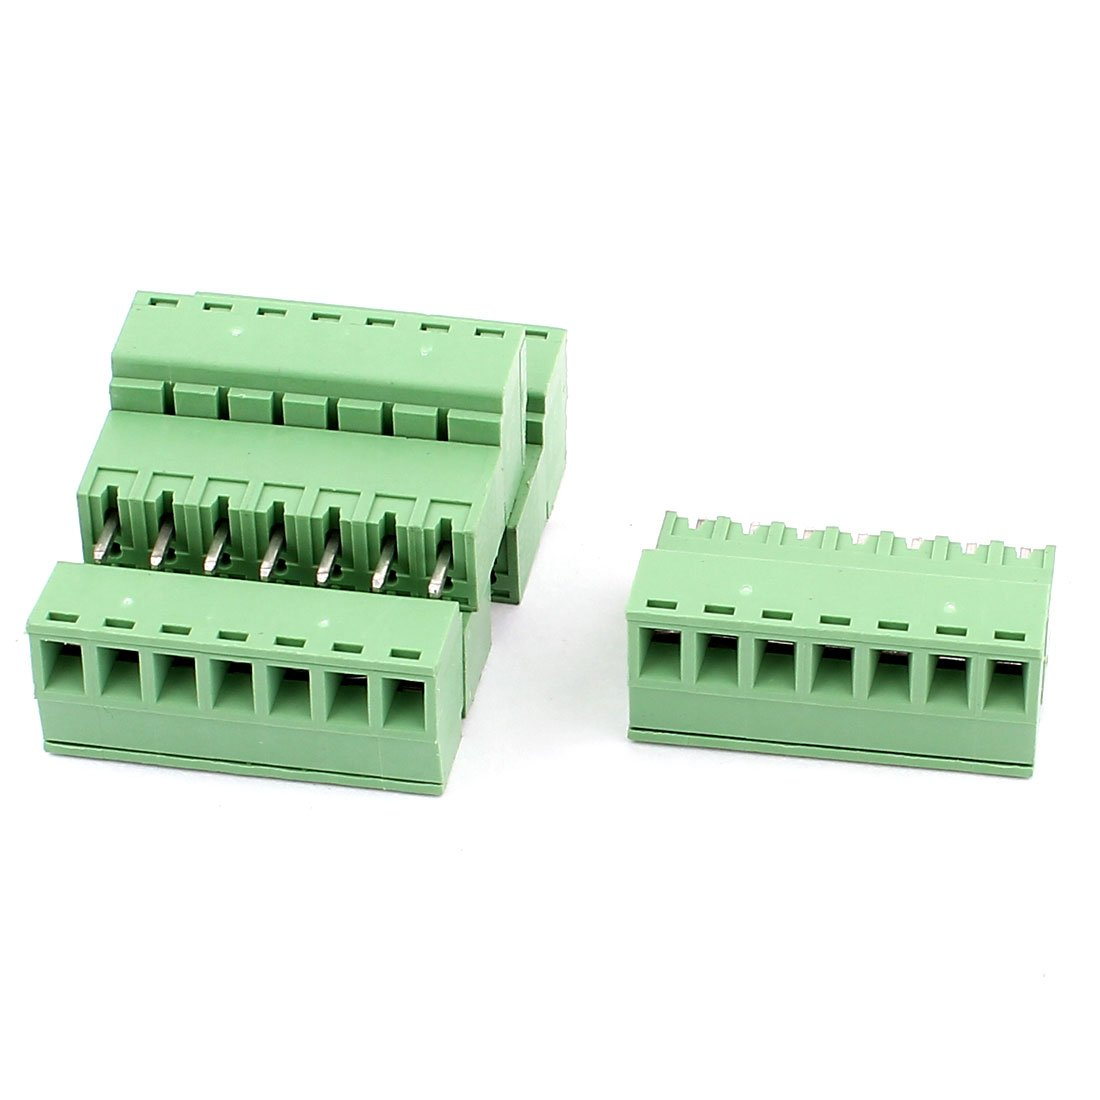 uxcell AC 300V 8A 7 Pins PCB Terminal Block Connector 3.81mm Pitch 4pcs Green